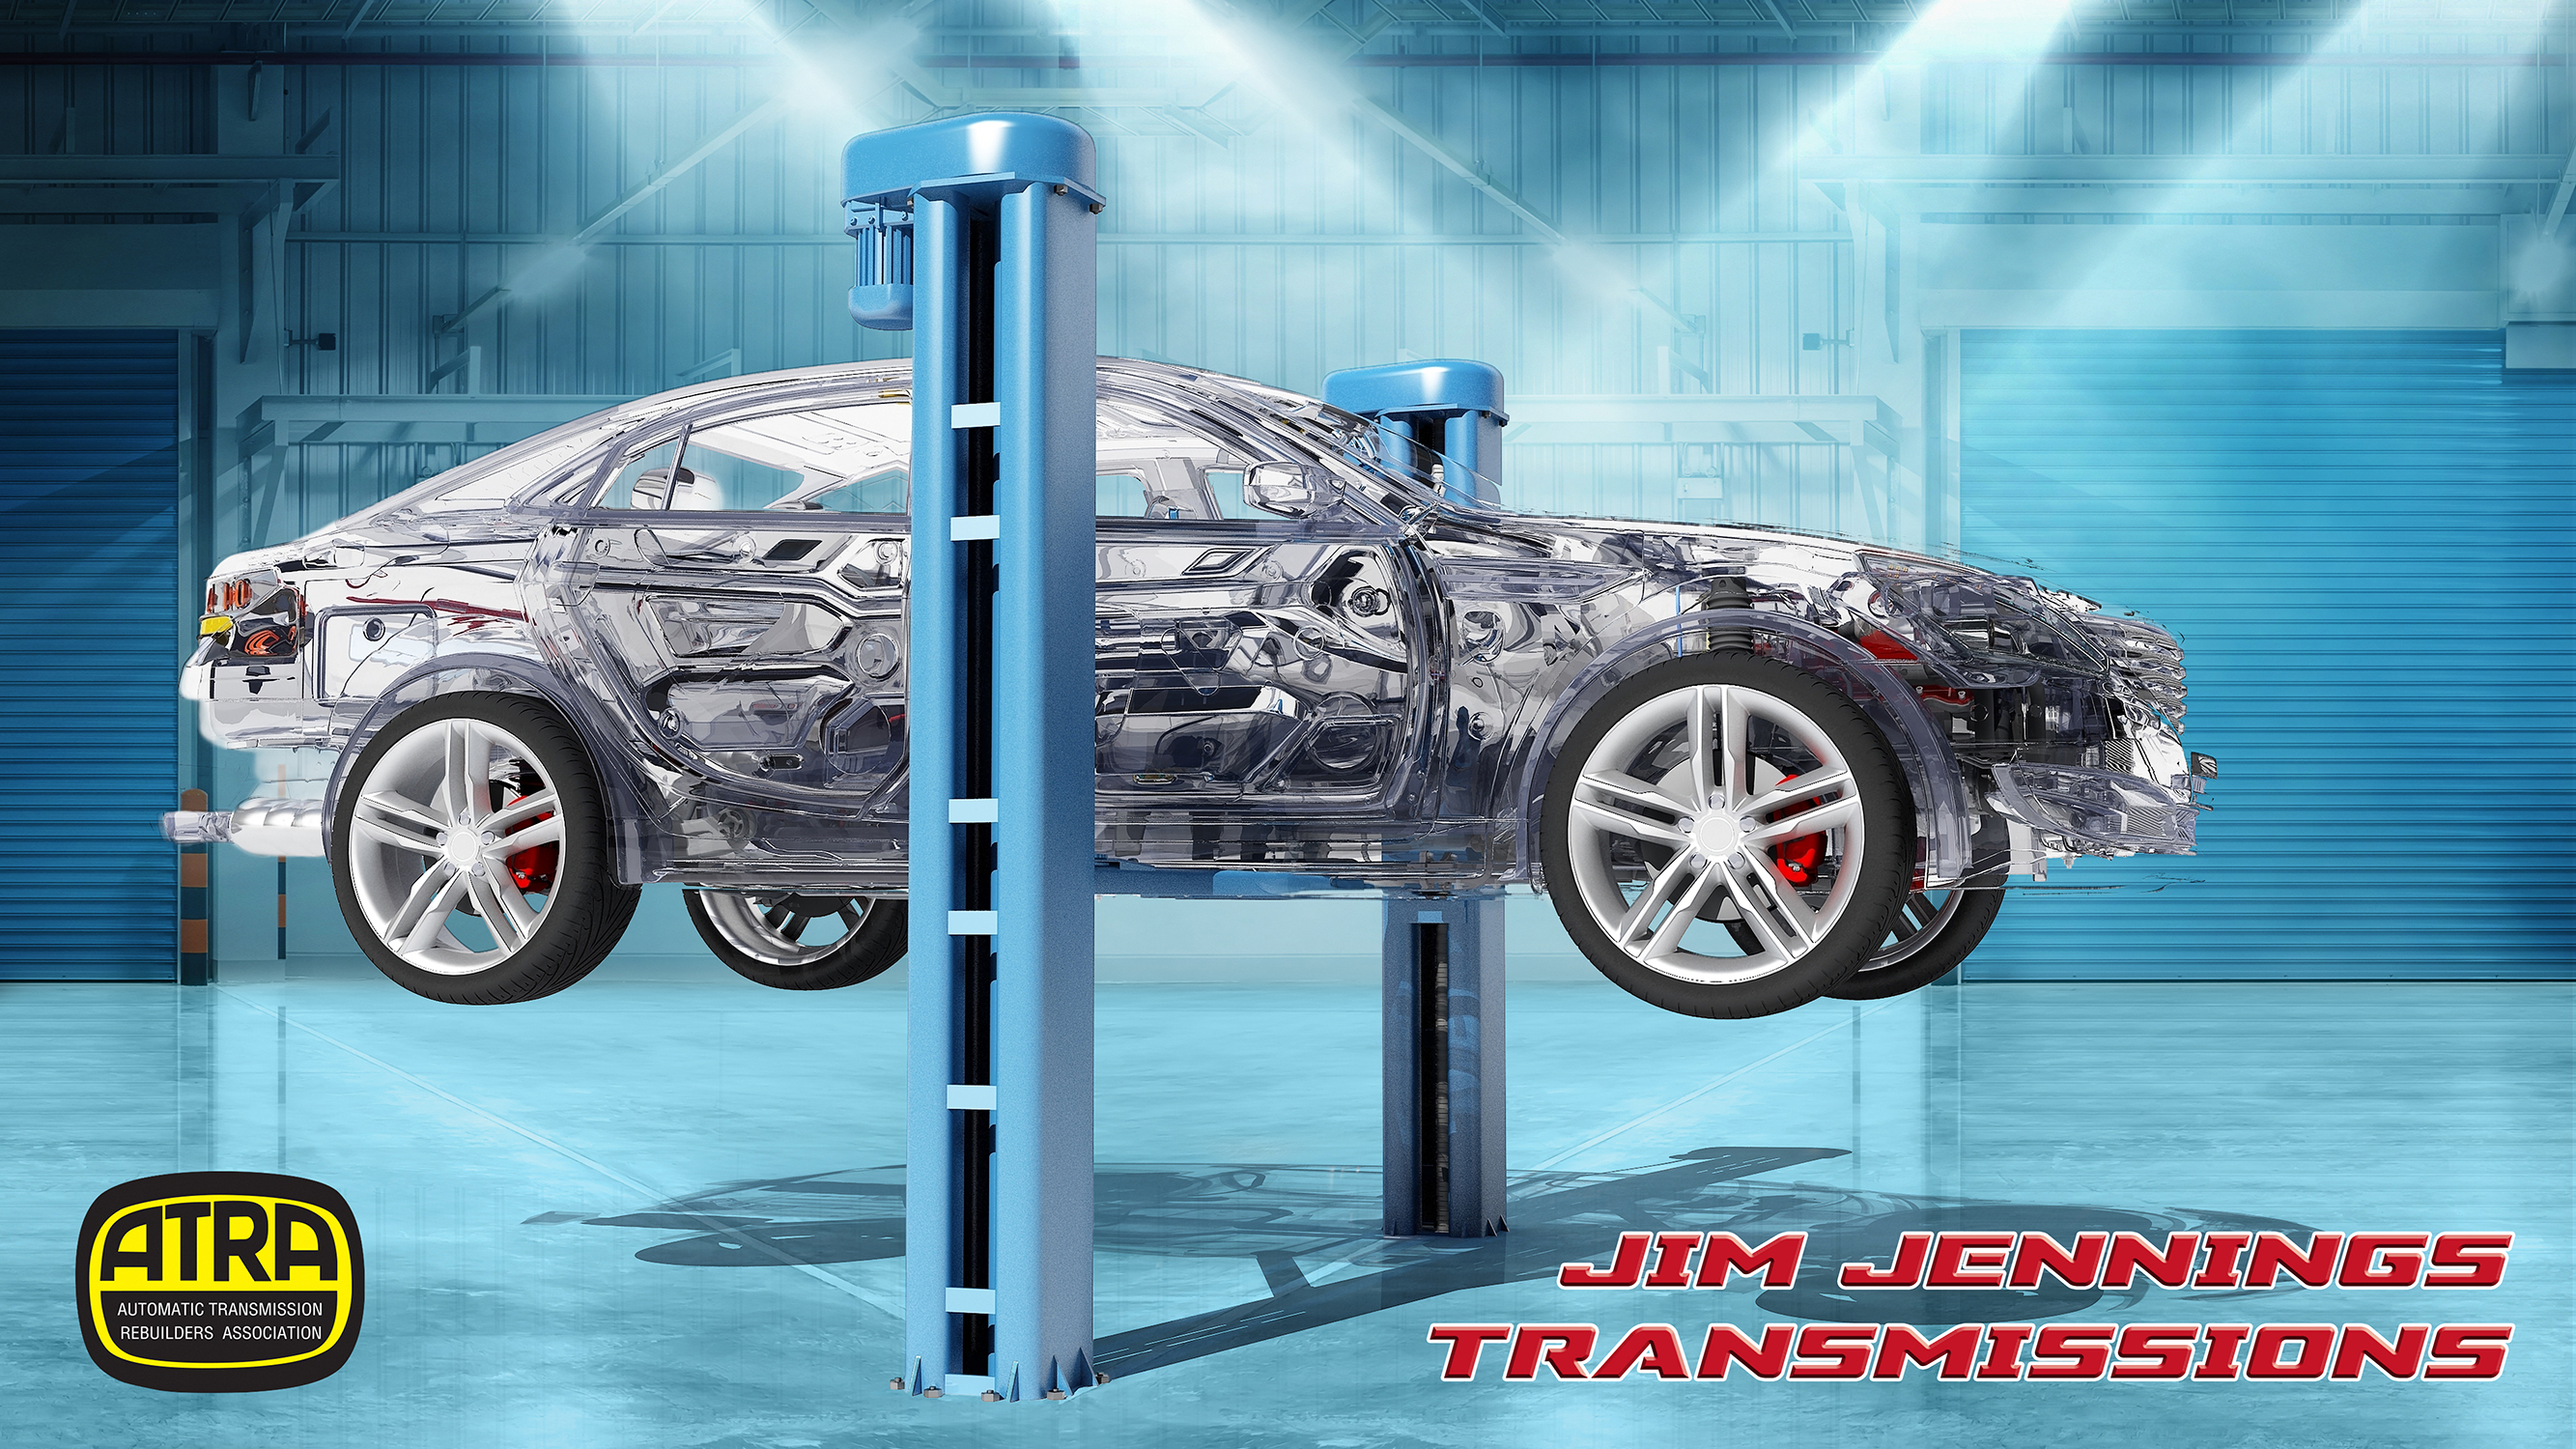 Jim Jennings Transmissions reviews | Auto Repair at 601 Eastern Blvd - Essex MD